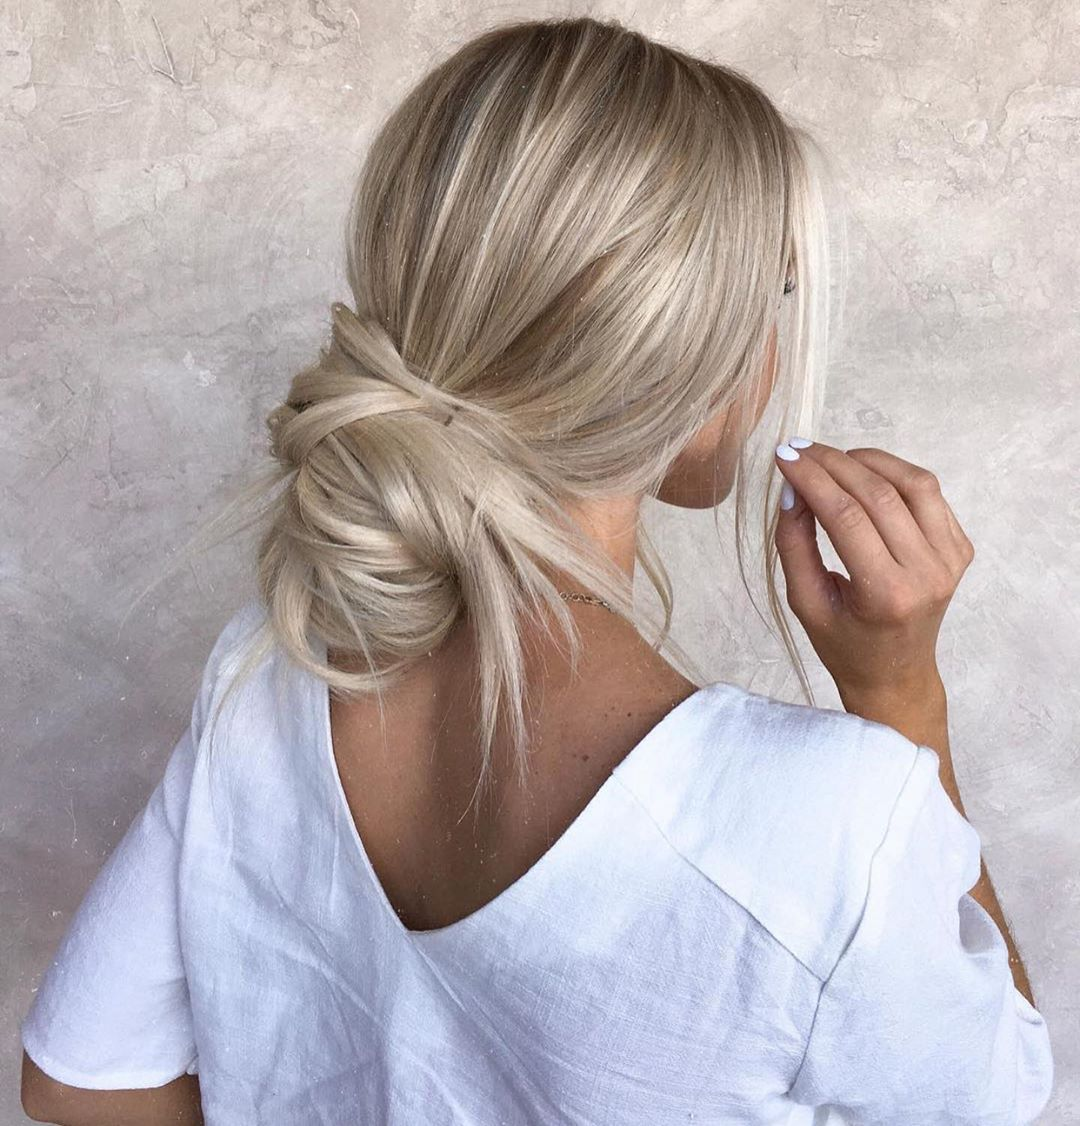 Undone Bun from a Ponytail